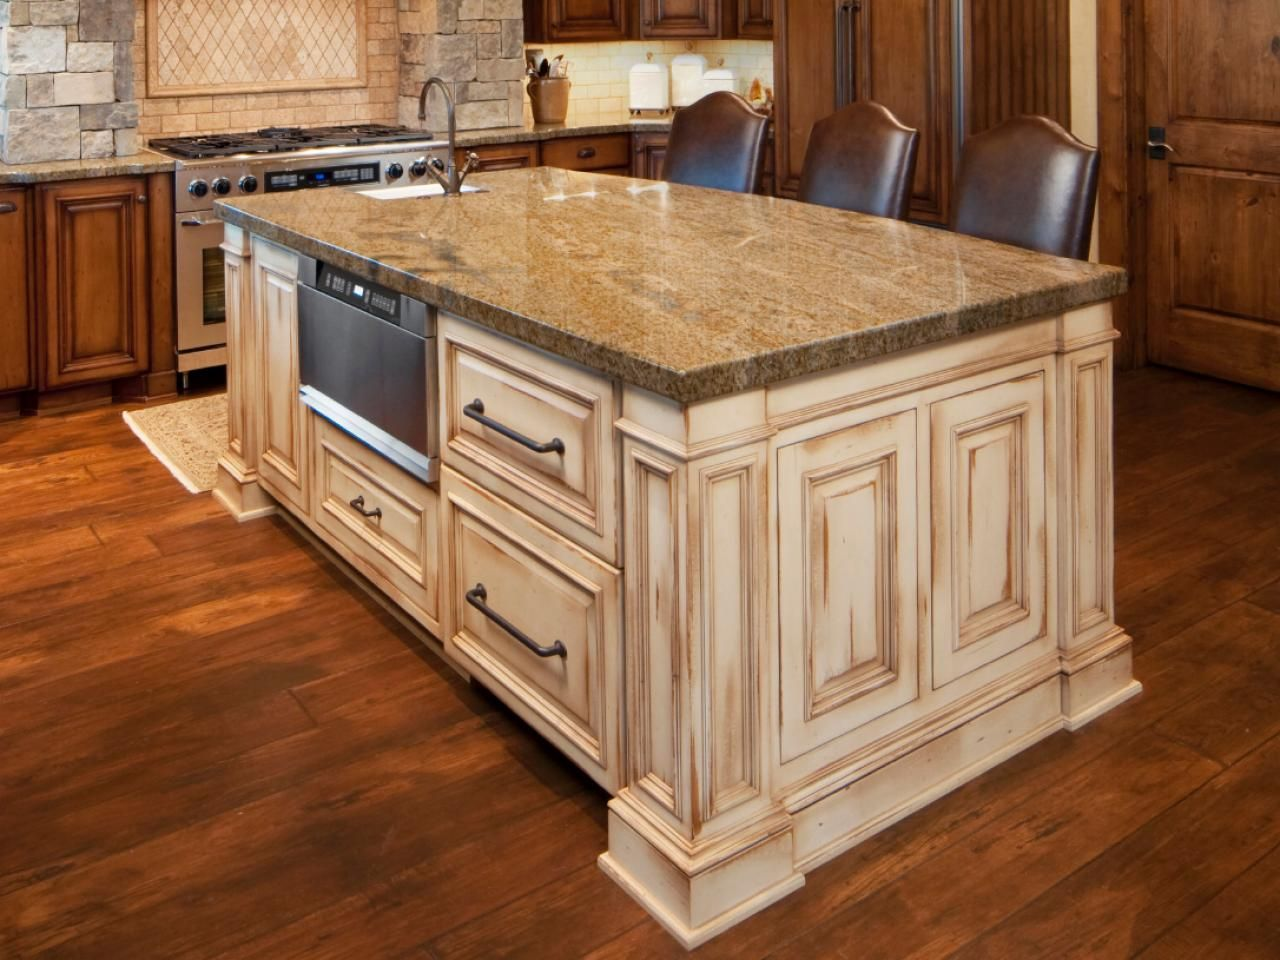 Stationary Kitchen Islands  Antiques Rectangle Shape And Design Delectable Kitchen Islands Design Inspiration